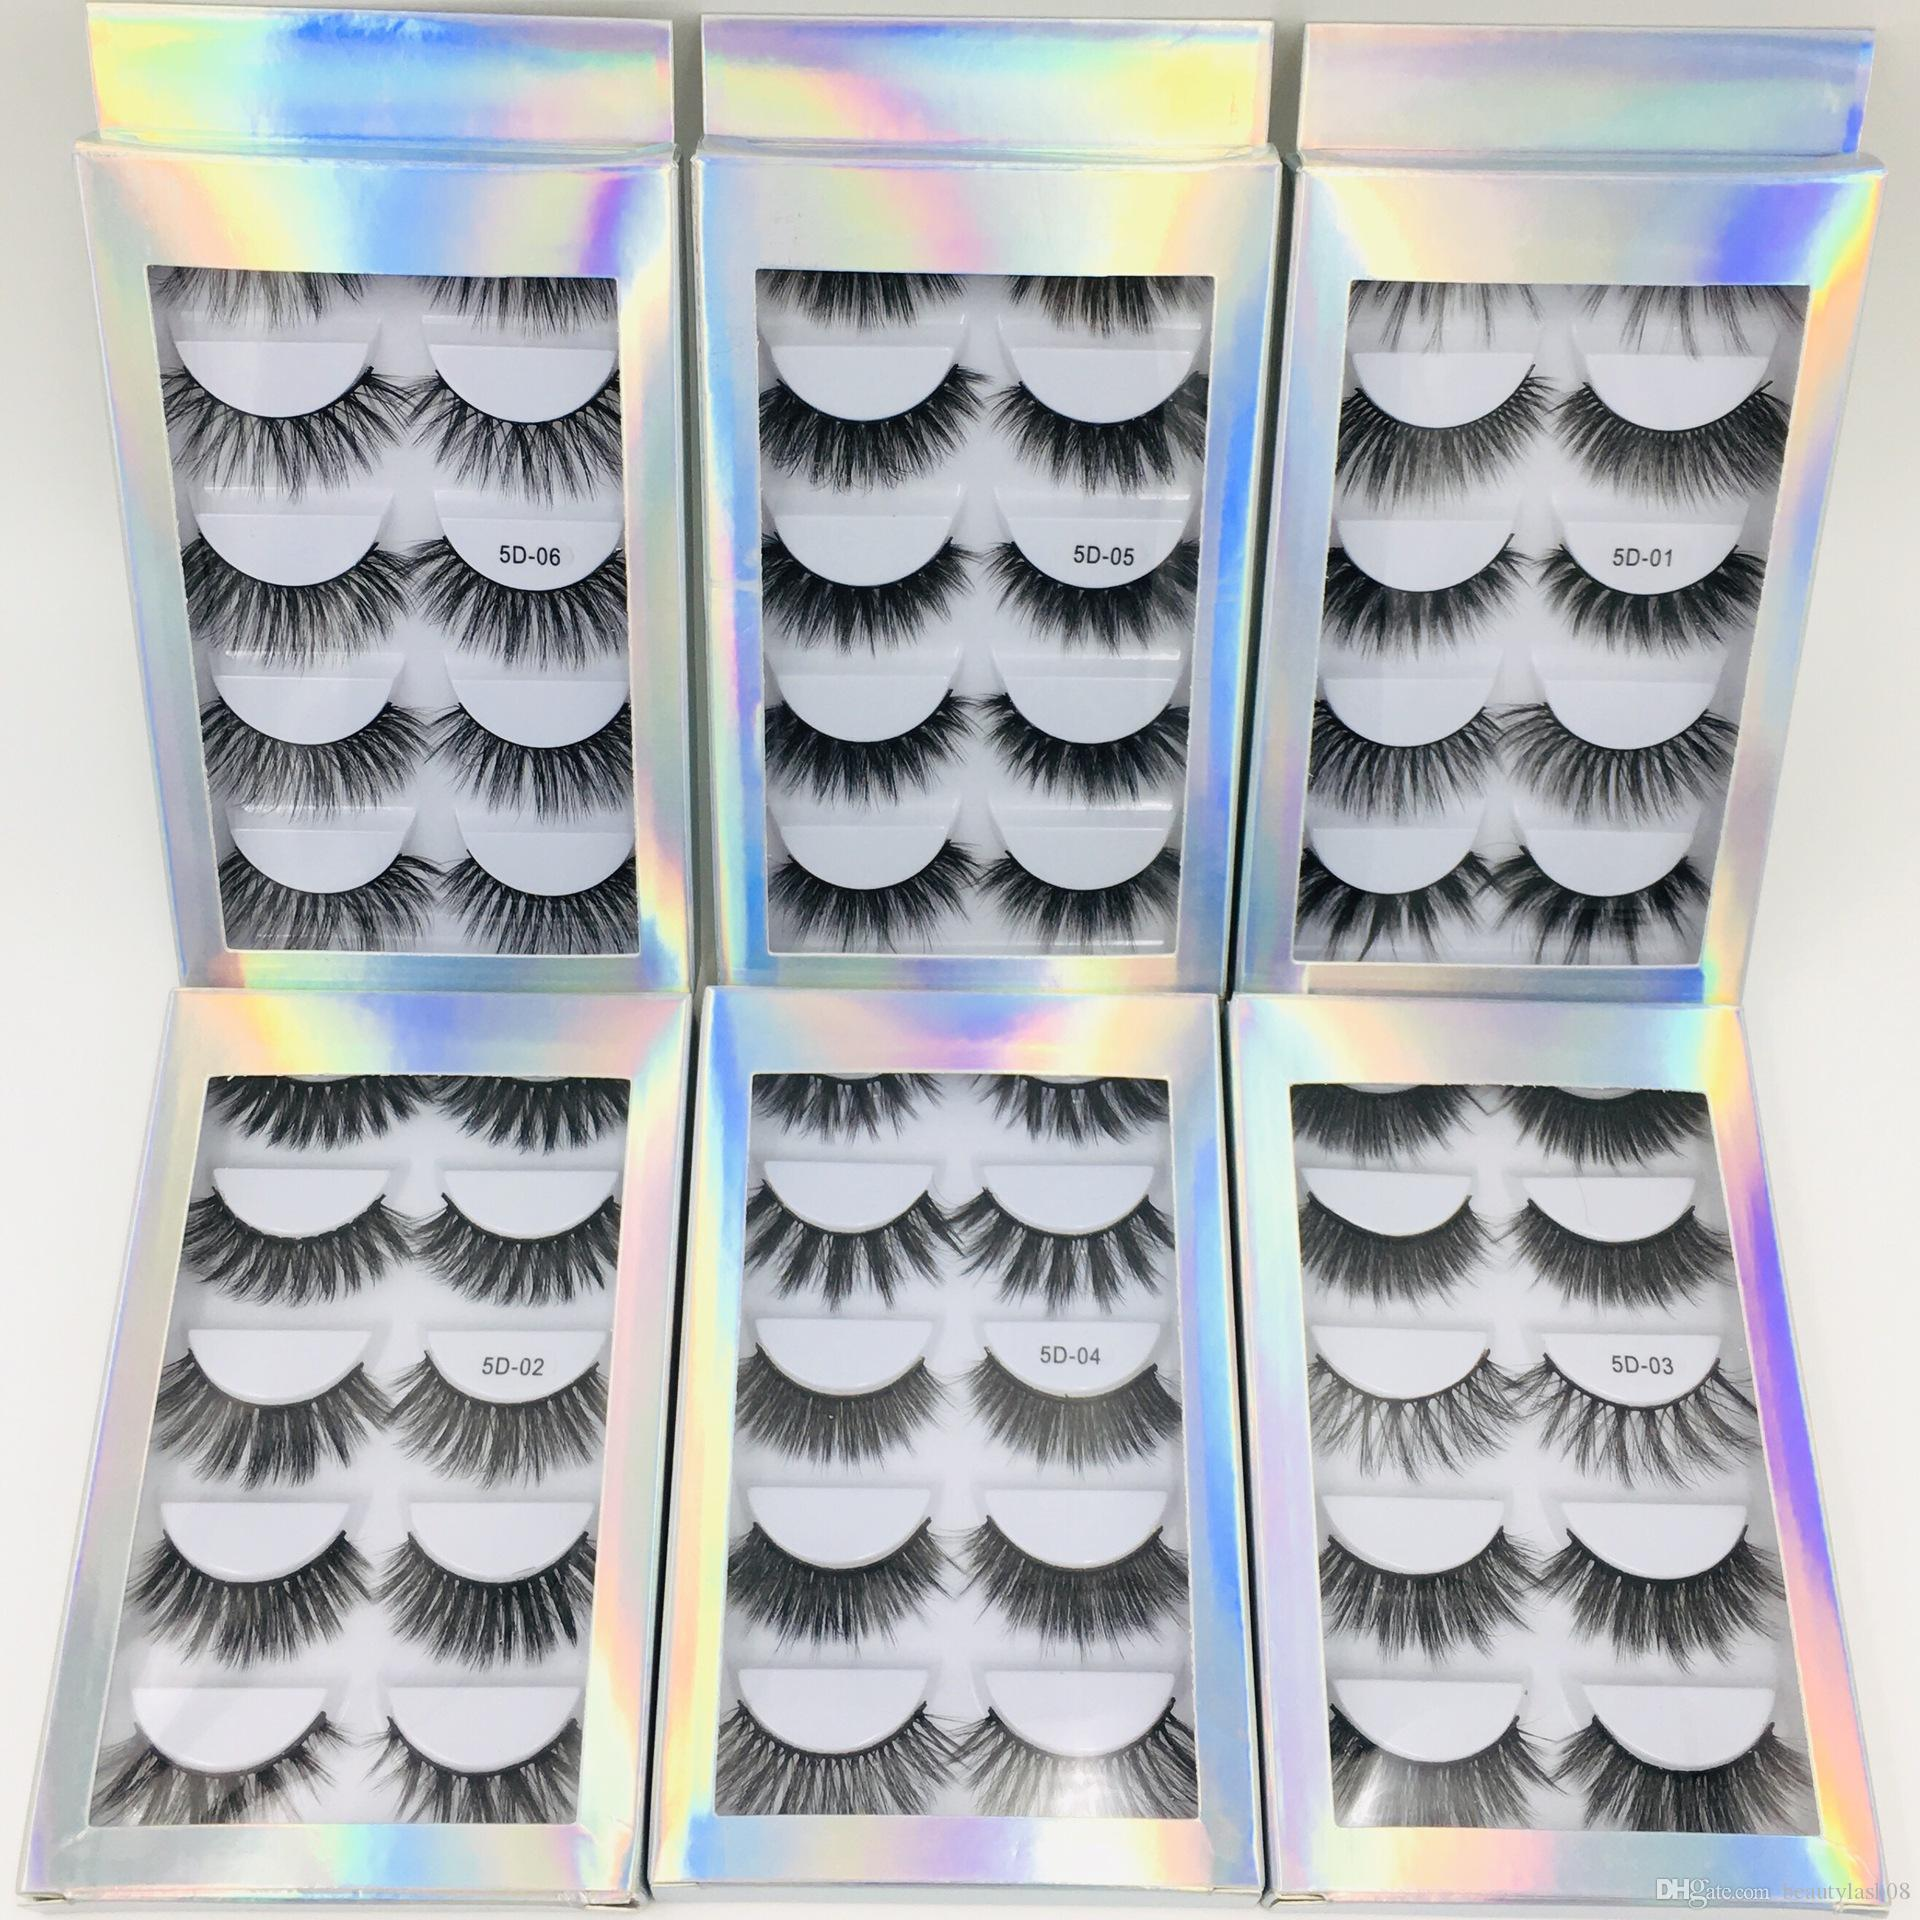 5 pairs of eyelashes high-grade package mink hair 5D eyelashes natural thick false eye lashes Factory wholesale